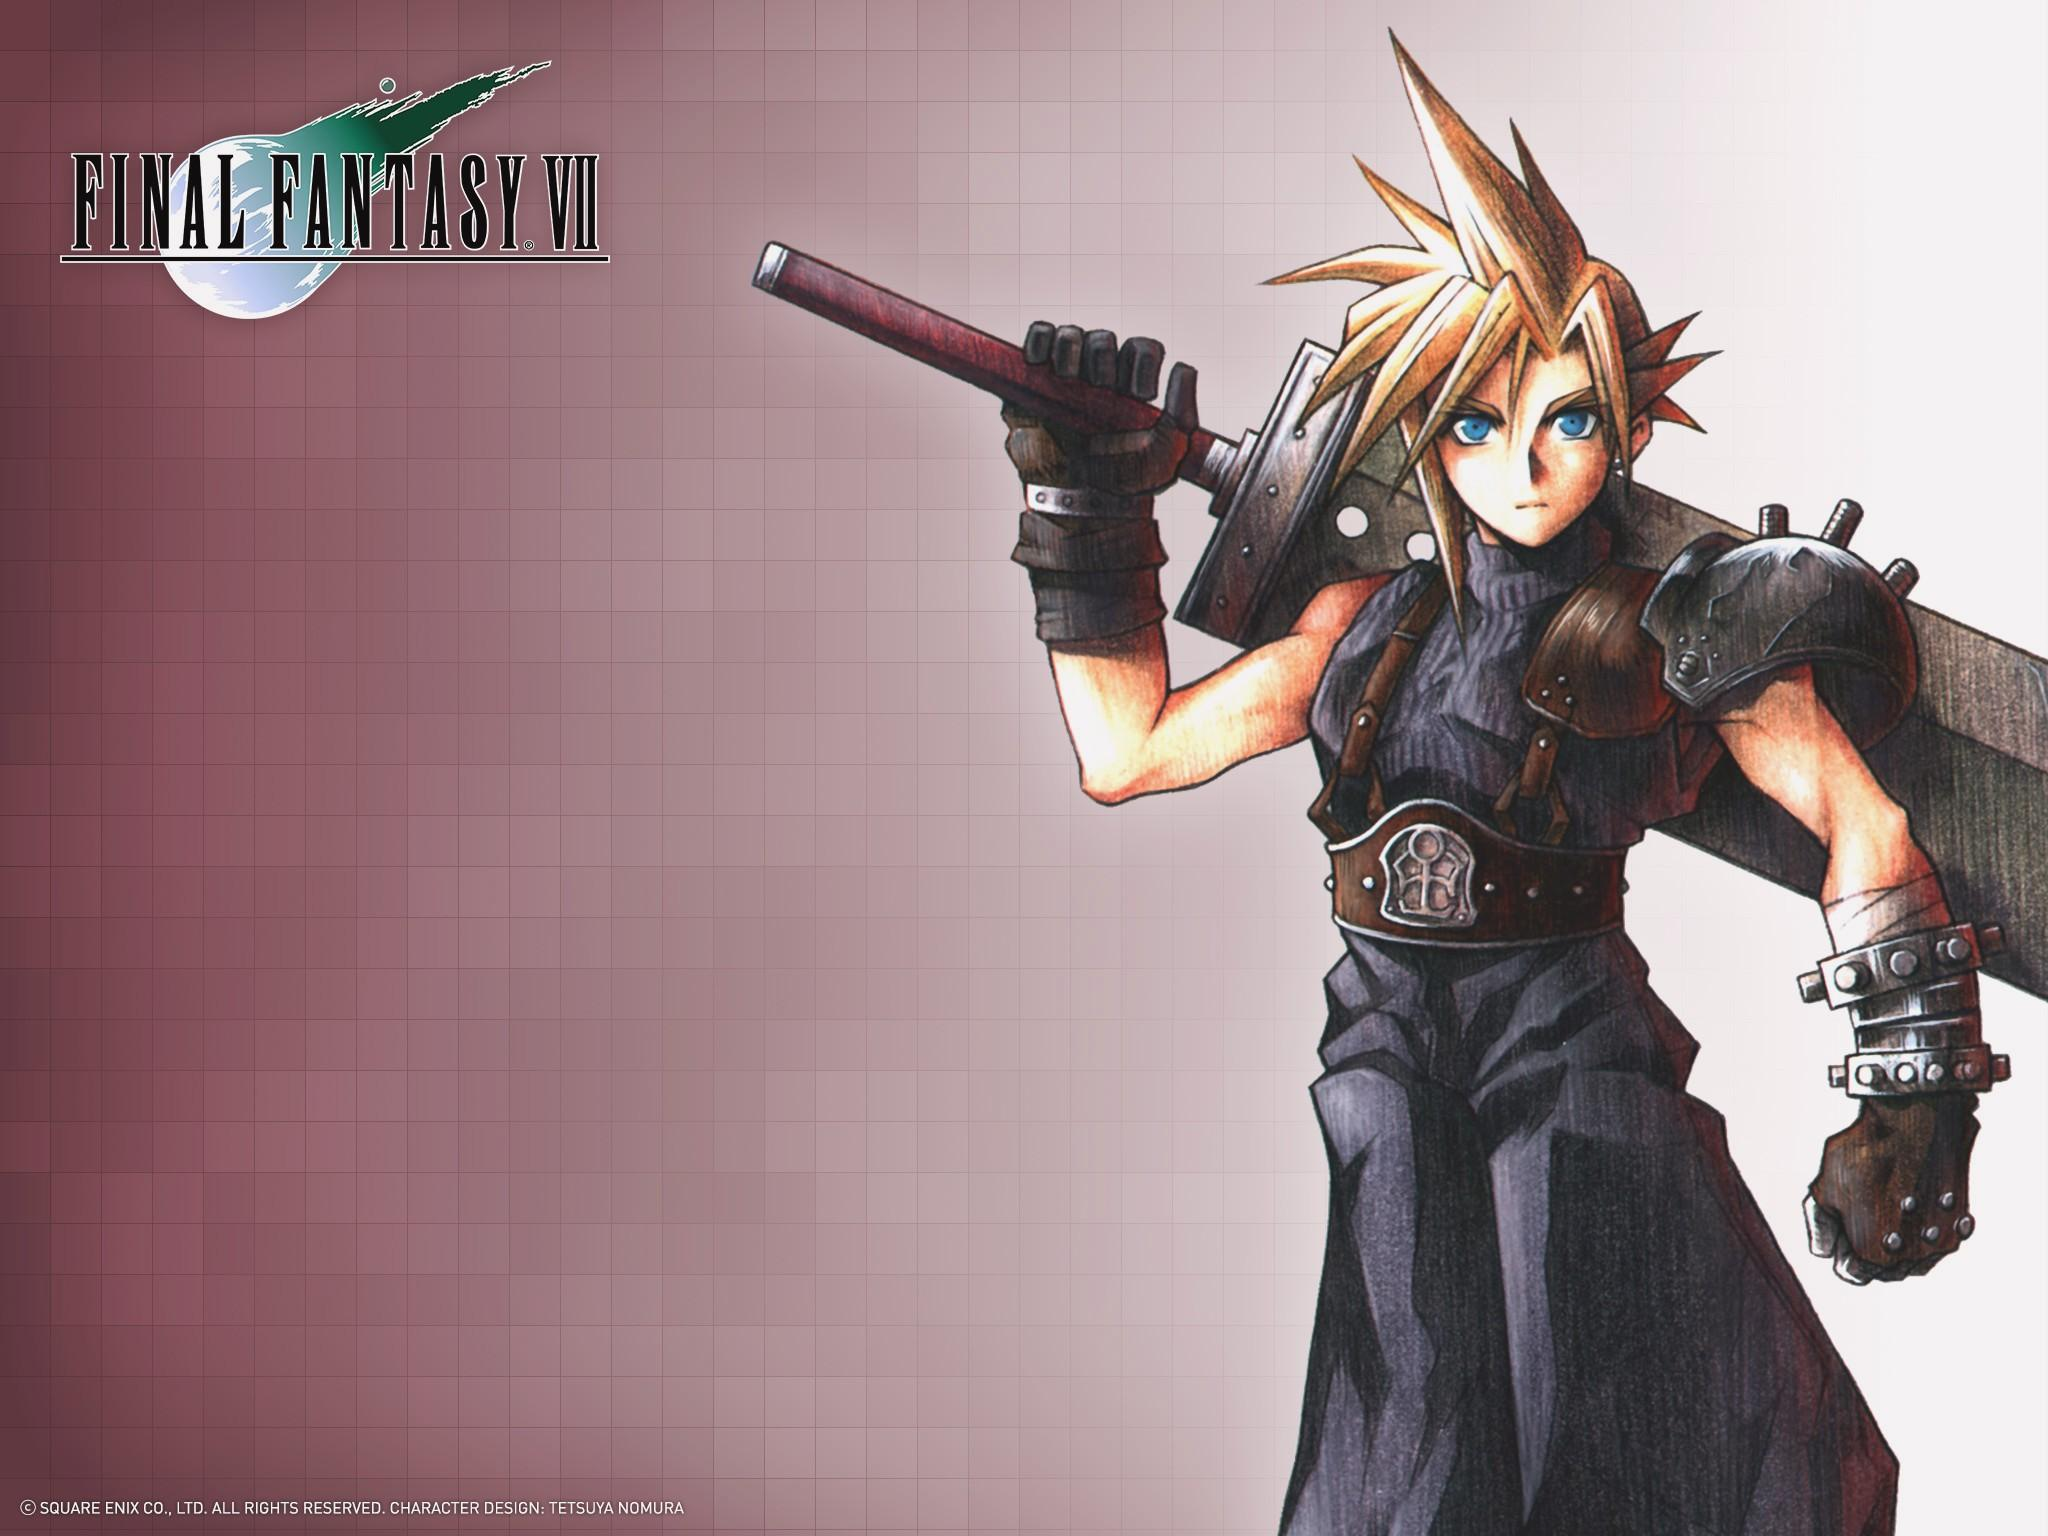 Final Fantasy VII at 2048 x 2048 iPad size wallpapers HD quality